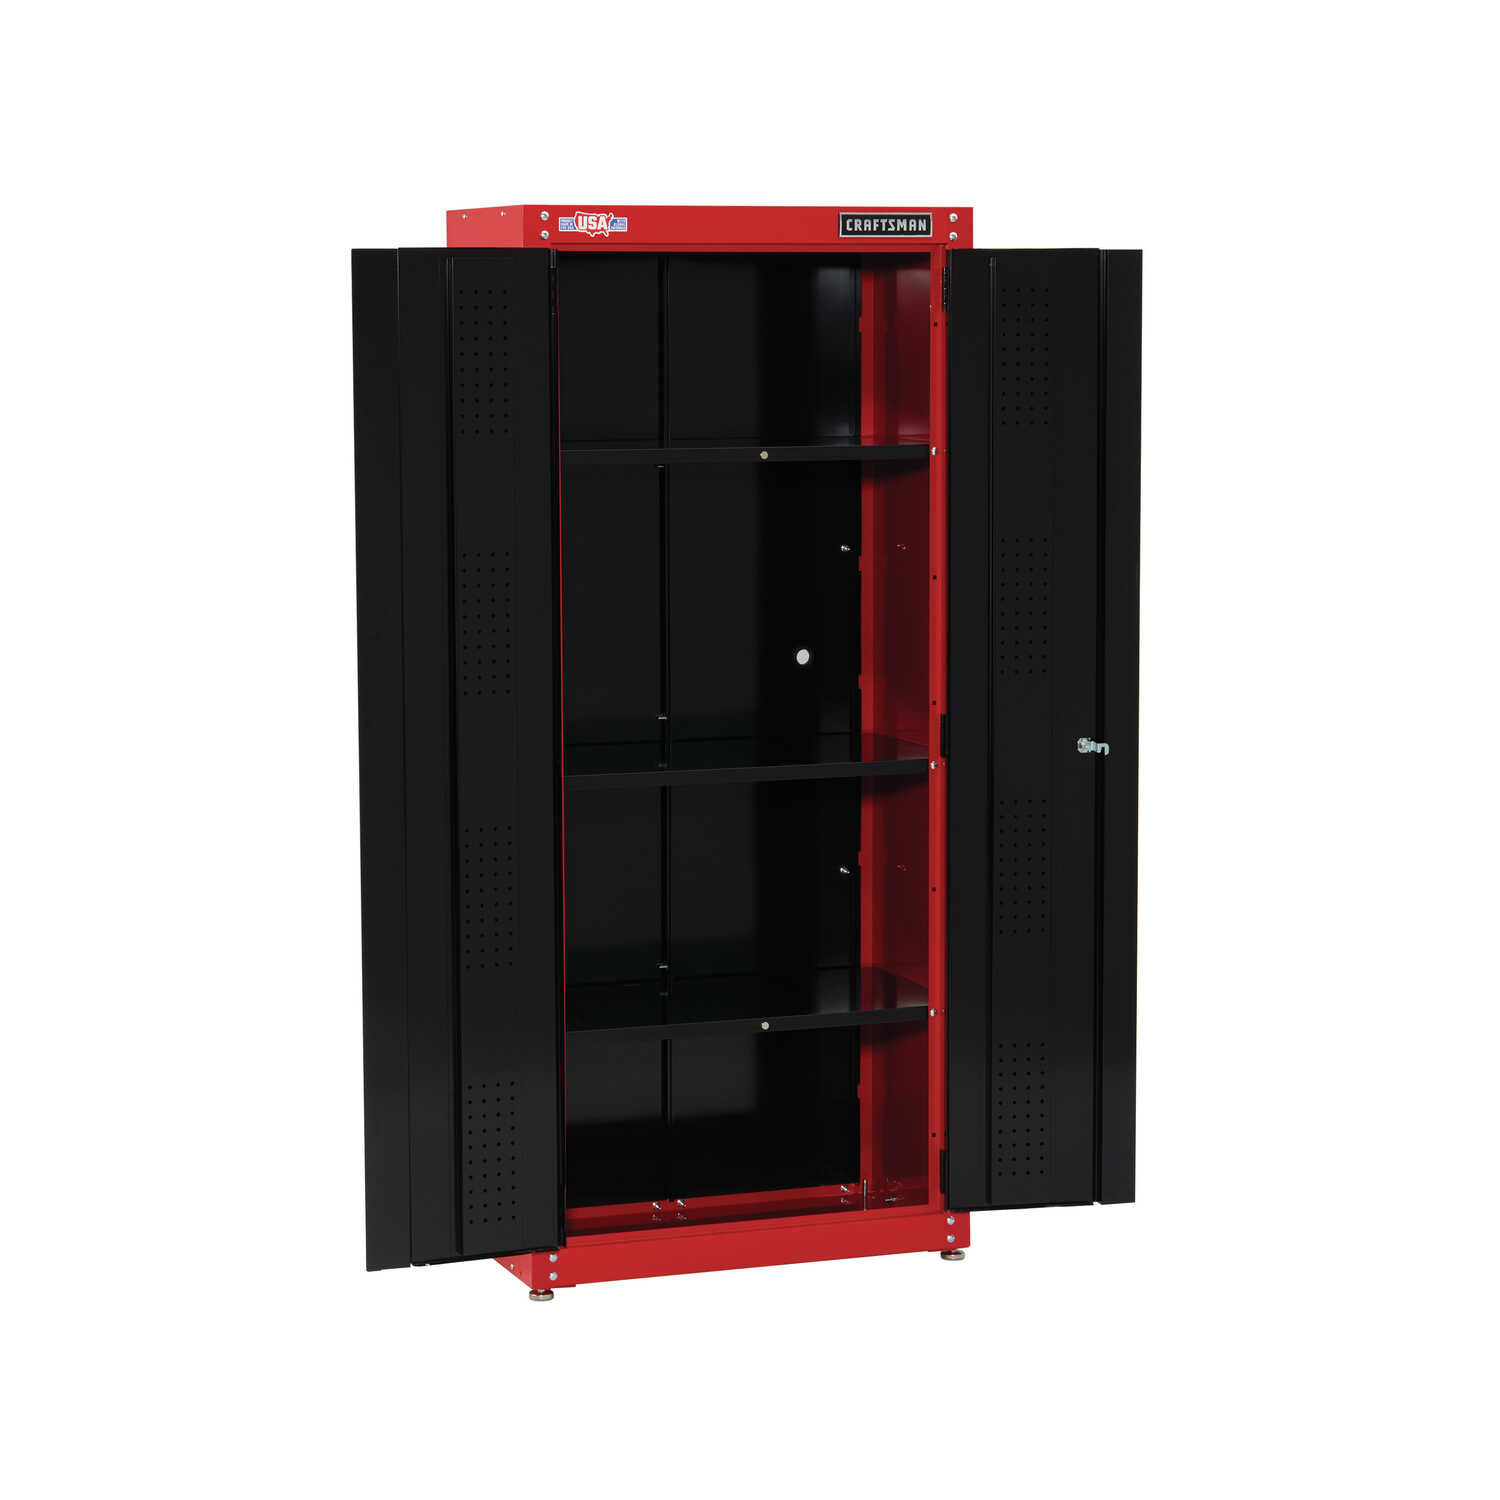 Craftsman  74 in. H x 32 in. W x 18 in. D Black/Red  Steel  Storage Cabinet